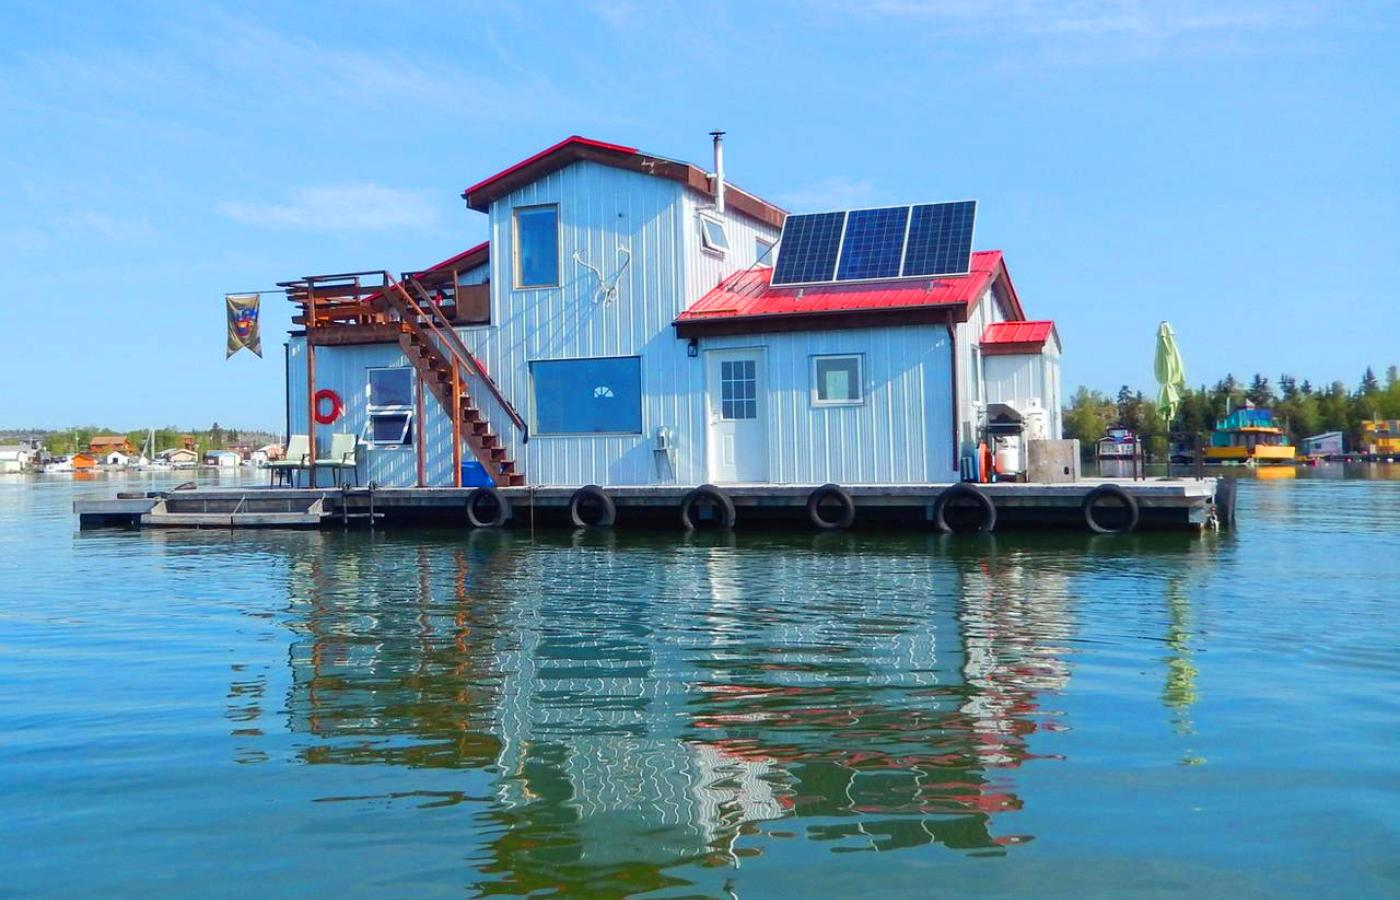 A floating bed and breakfast on Yellowknife Bay on Great Slave Lake in Canada's Northwest Territories